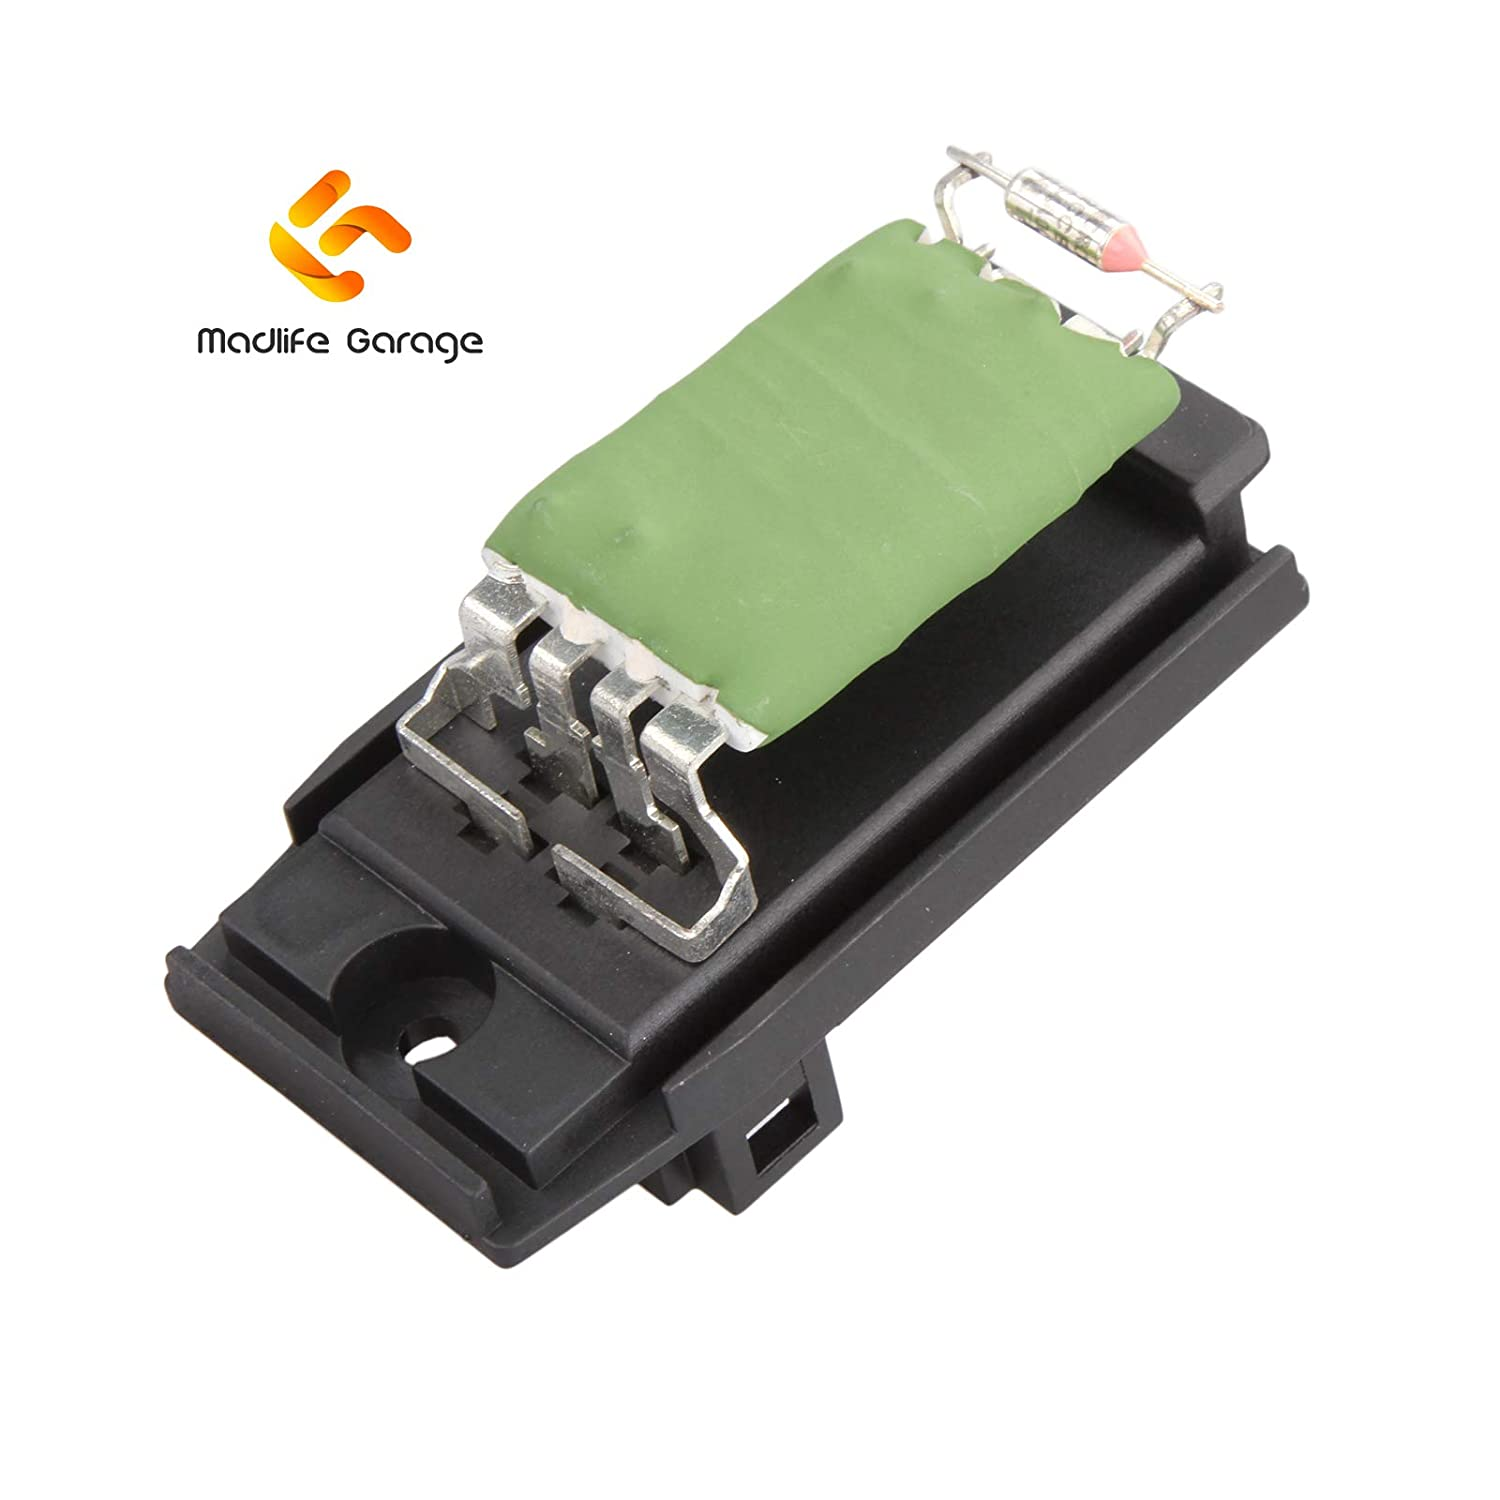 Motor Blower Fan Heater Resistor 1311115 For Focus Mondeo Fiesta Cougar Transit Tourneo From Madlife Garage